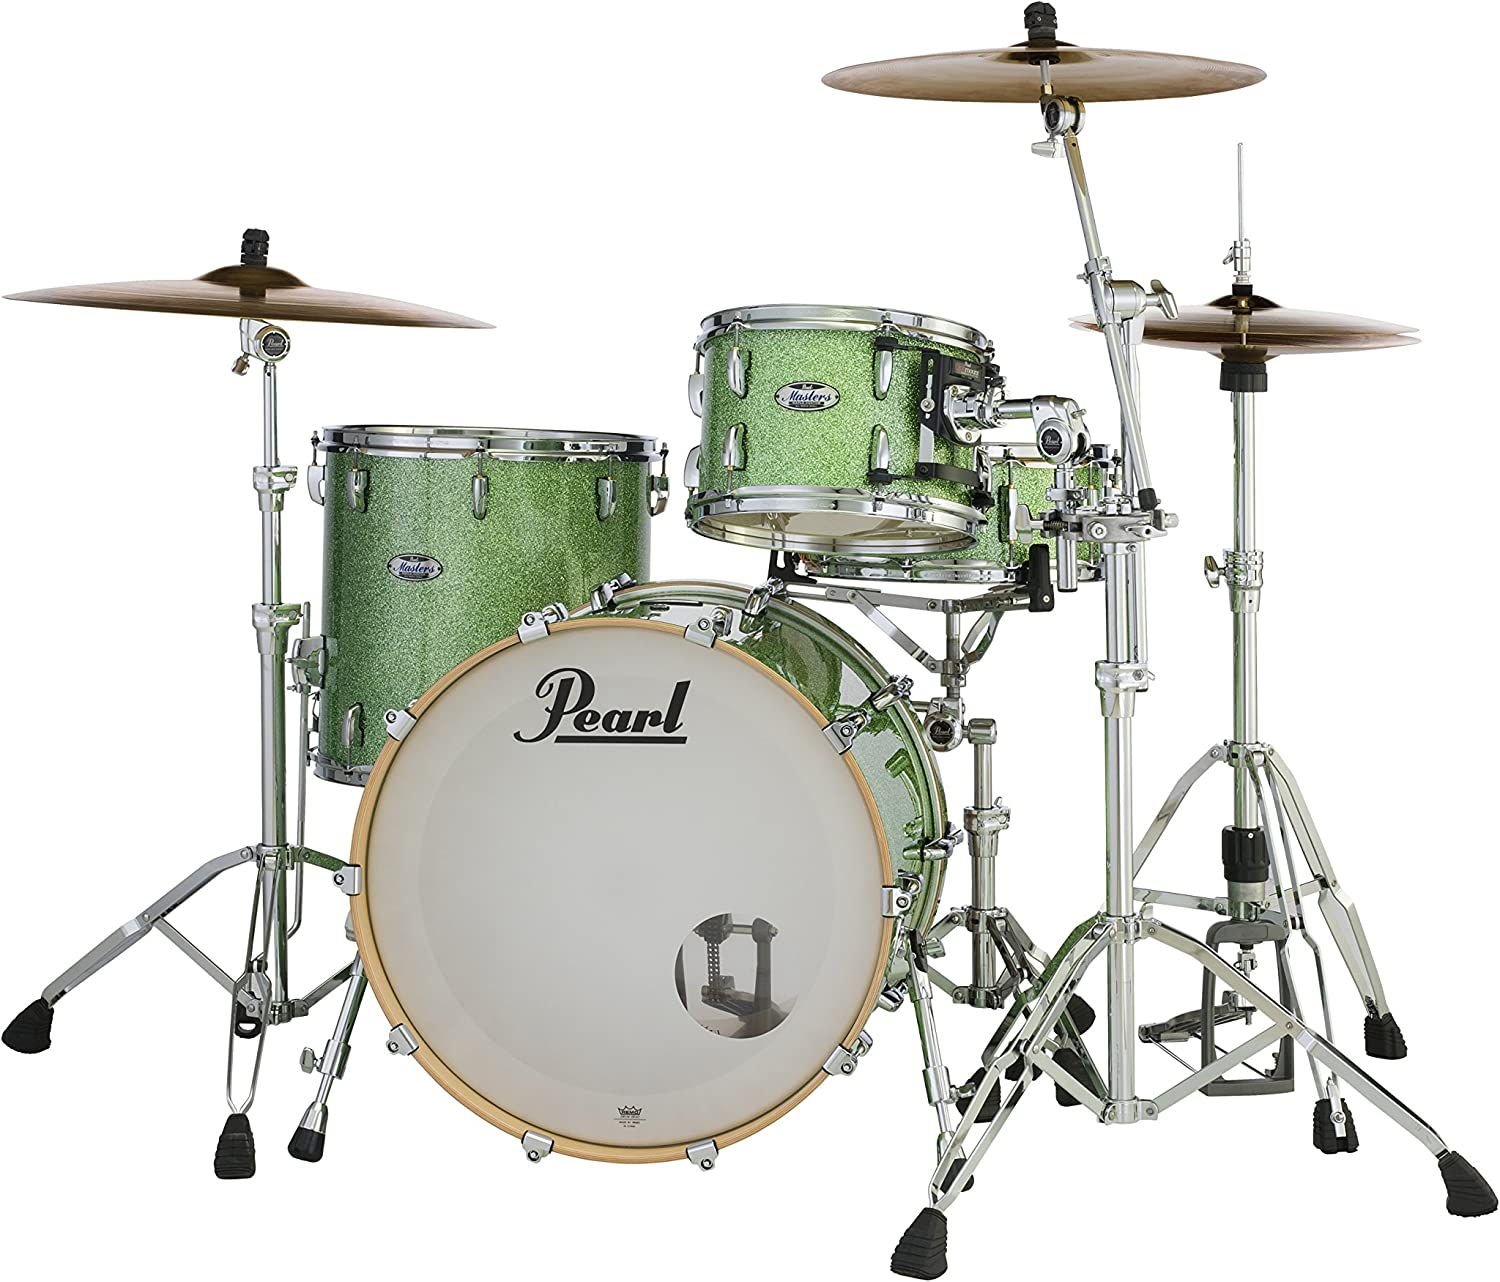 Pearl Masters Maple Complete Sale price Now on sale MCT943XP C348 Shell Drum 3 Piece Pa